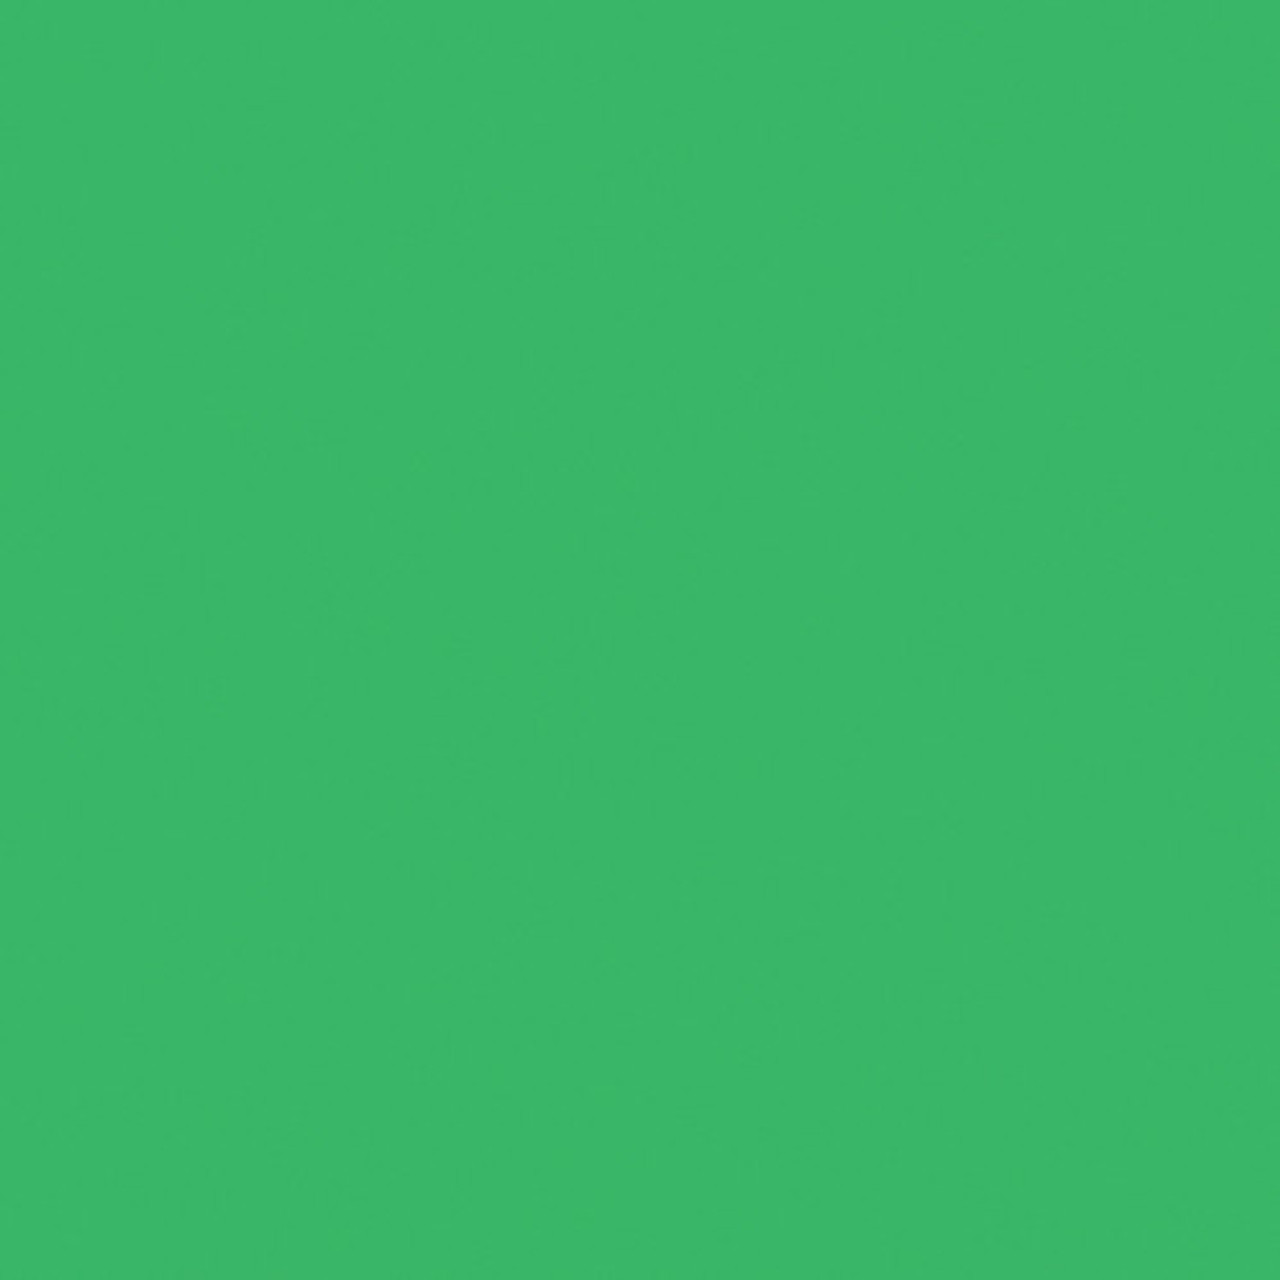 #0389 Rosco Gels Roscolux Chroma Green, 20x24""